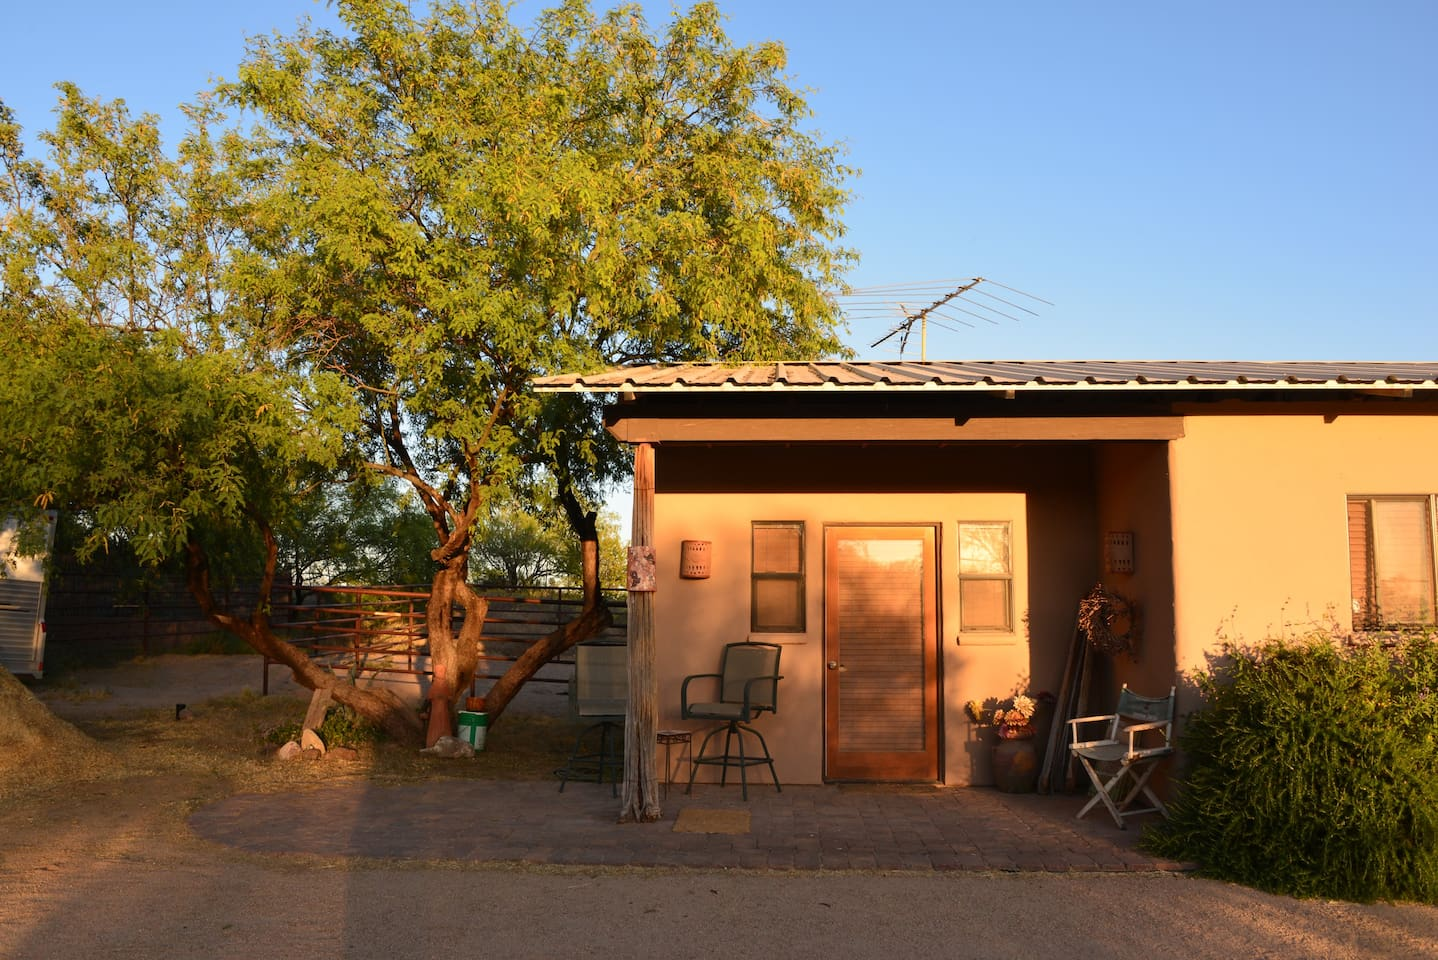 Your private casita for your time here!